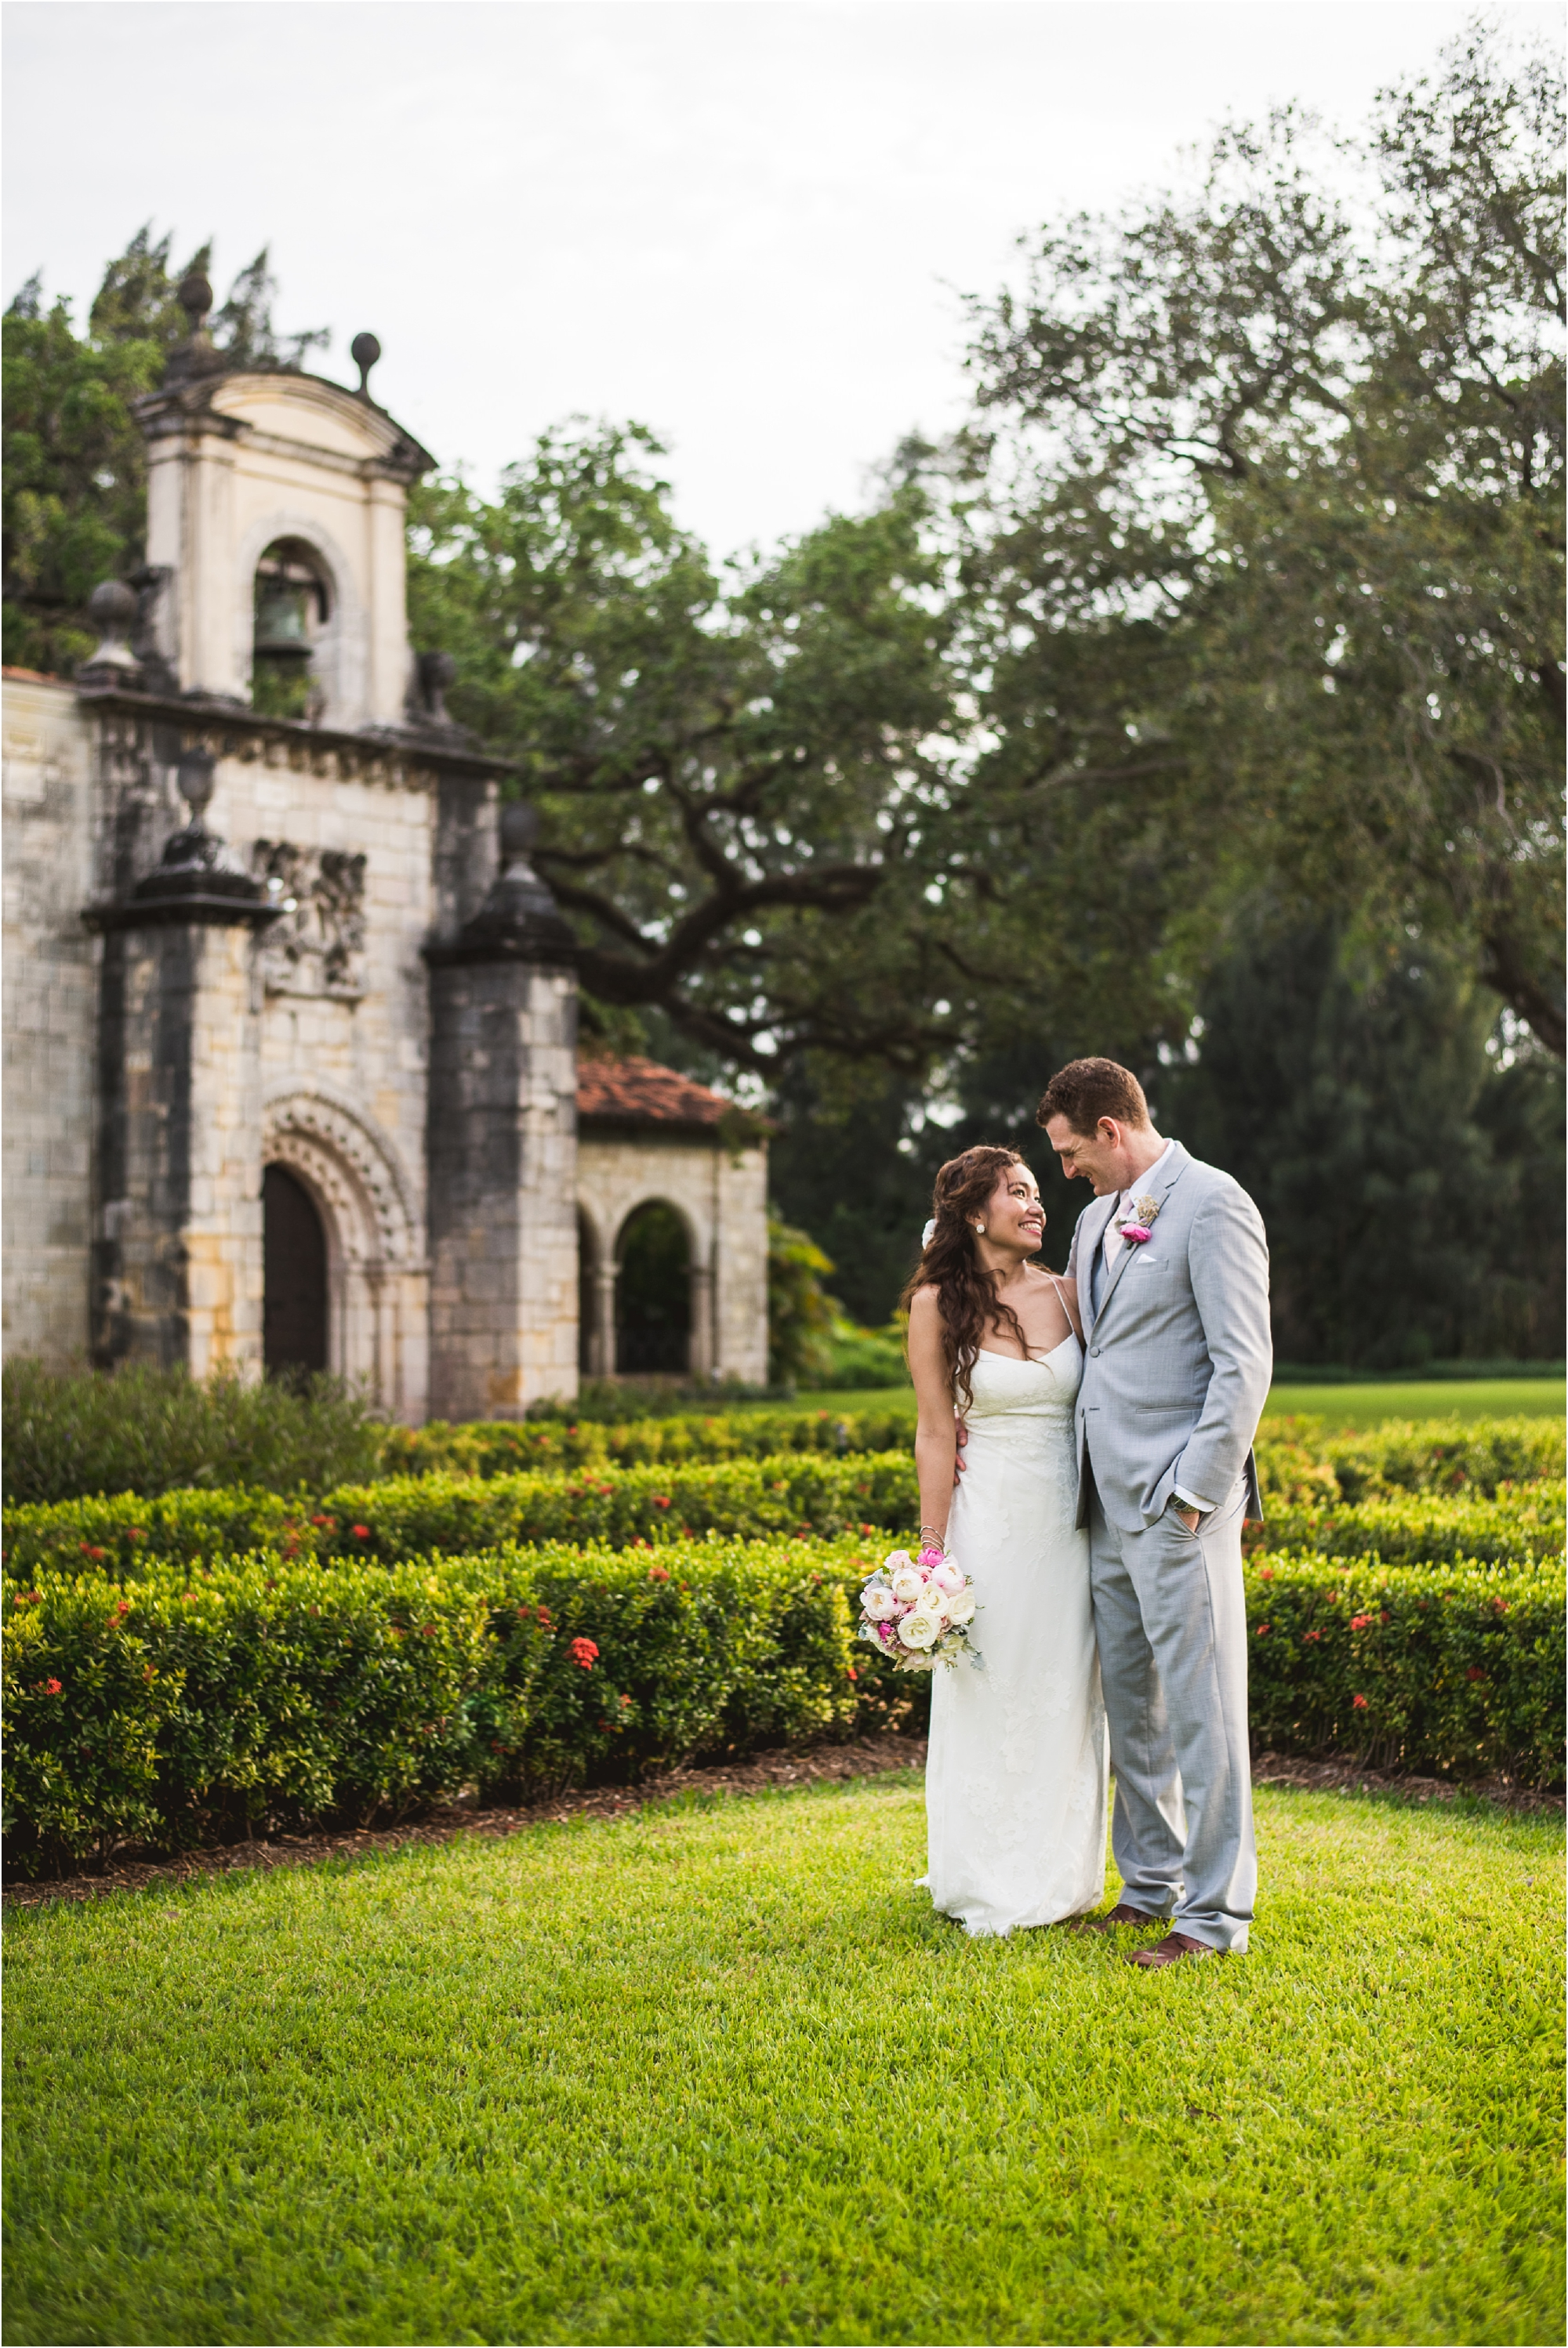 Spanish-Monastery-miami-beach-outdoor-elegant-wedding-photographer-jessenia-gonzalez_1226.jpg